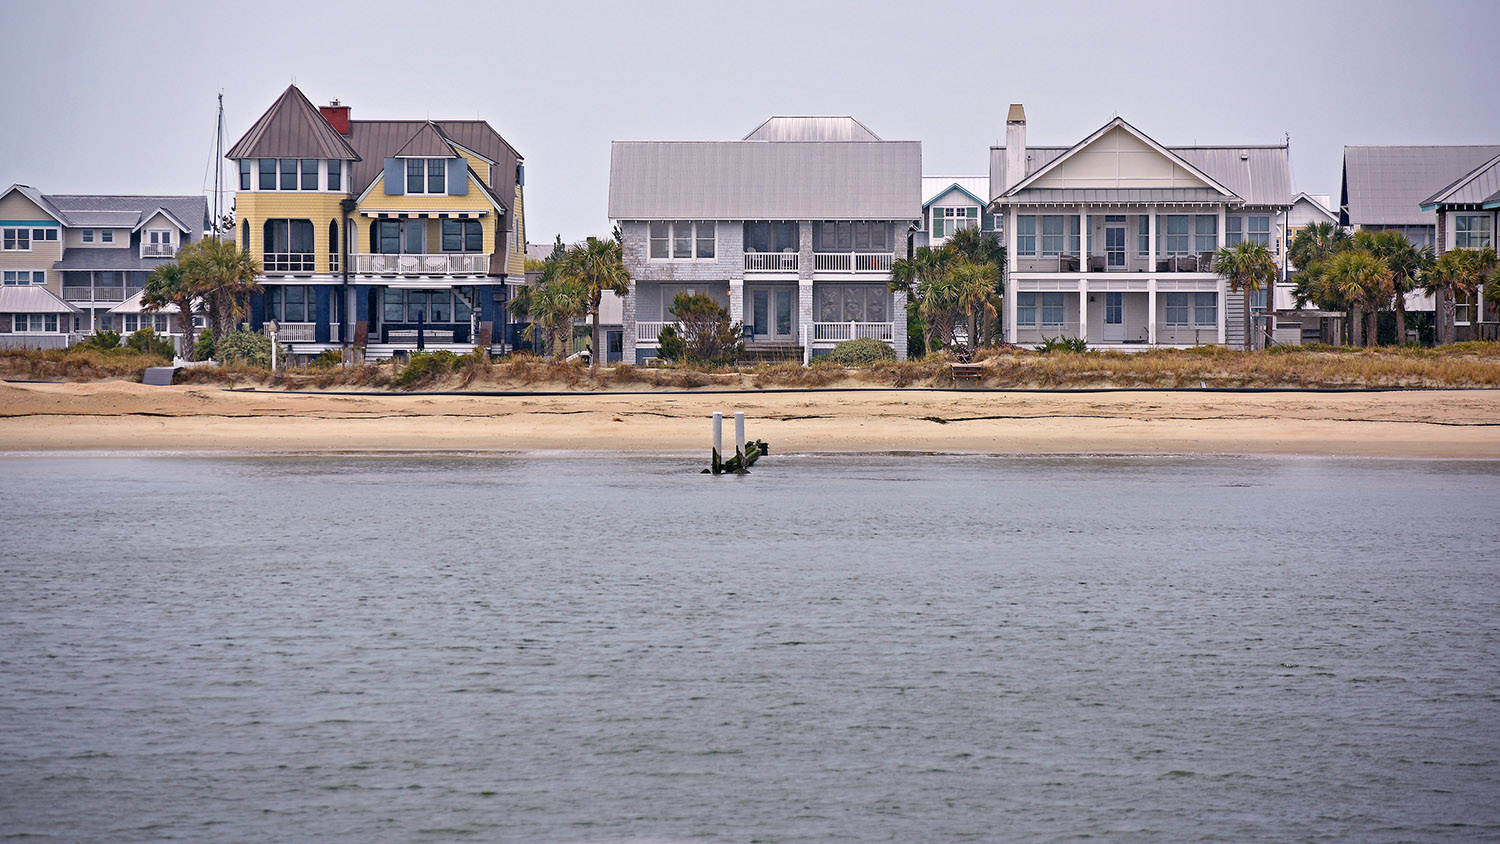 Cottages hug the beach on Bald Head Island.